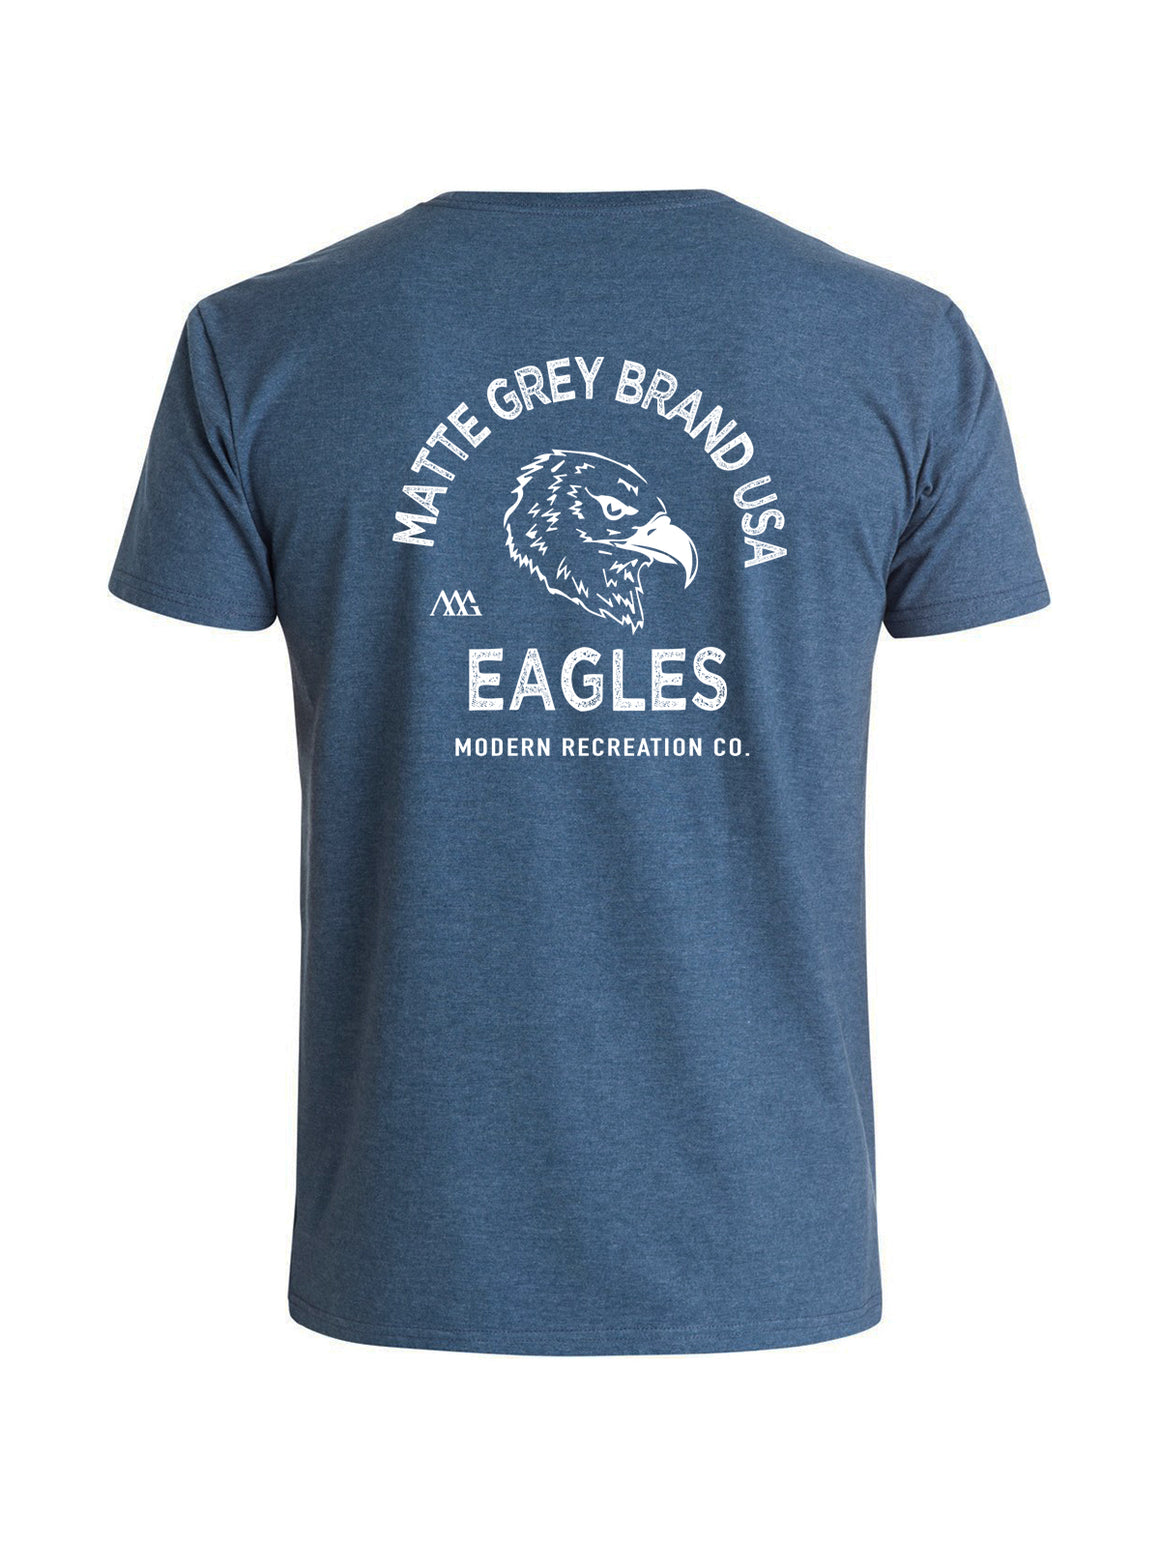 Eagles Tee - Navy (White)